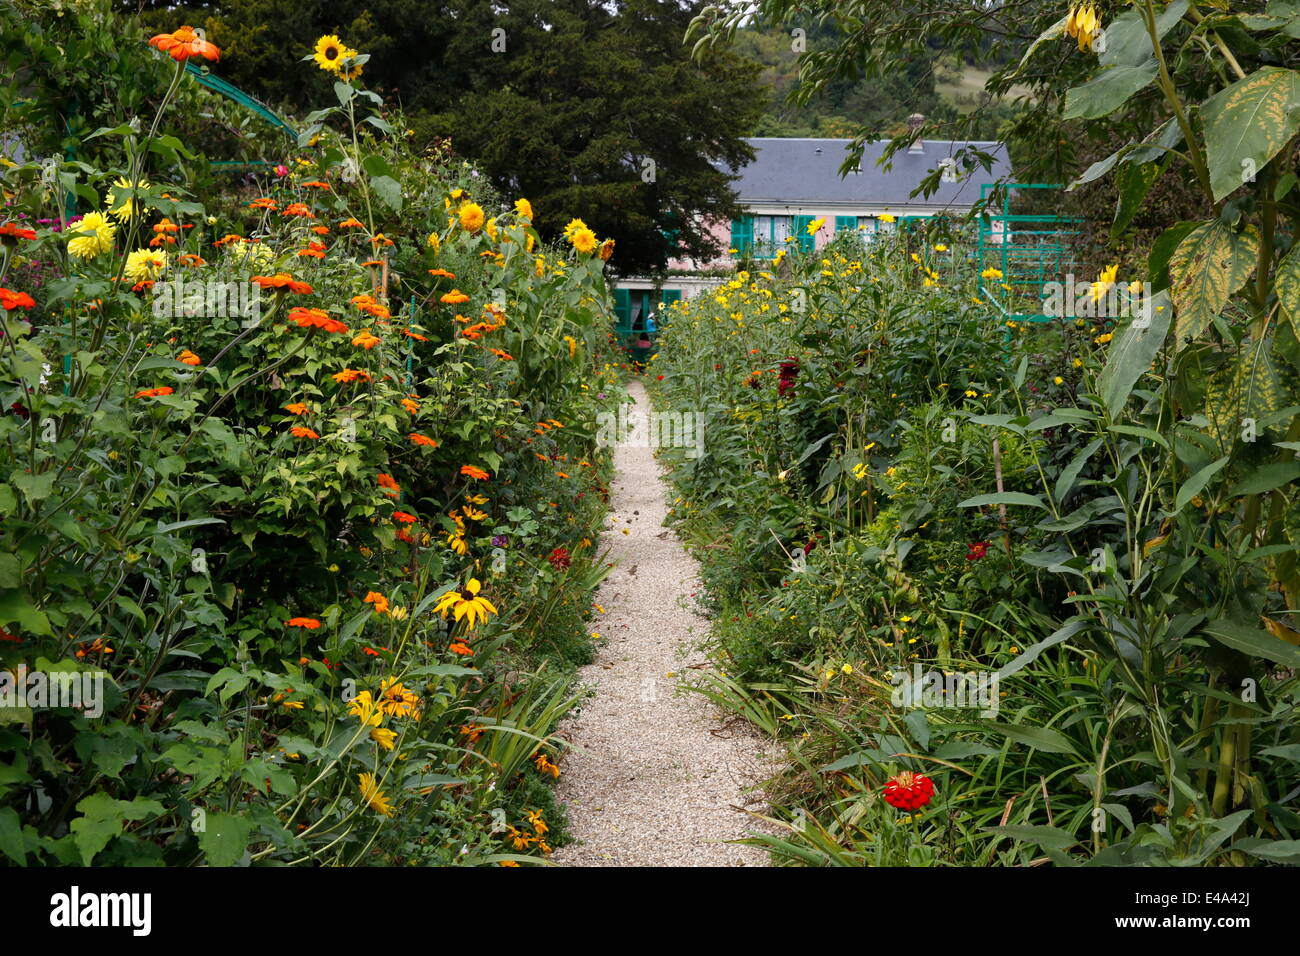 Monet a Giverny, Yvelines, in Normandia, Francia, Europa Immagini Stock